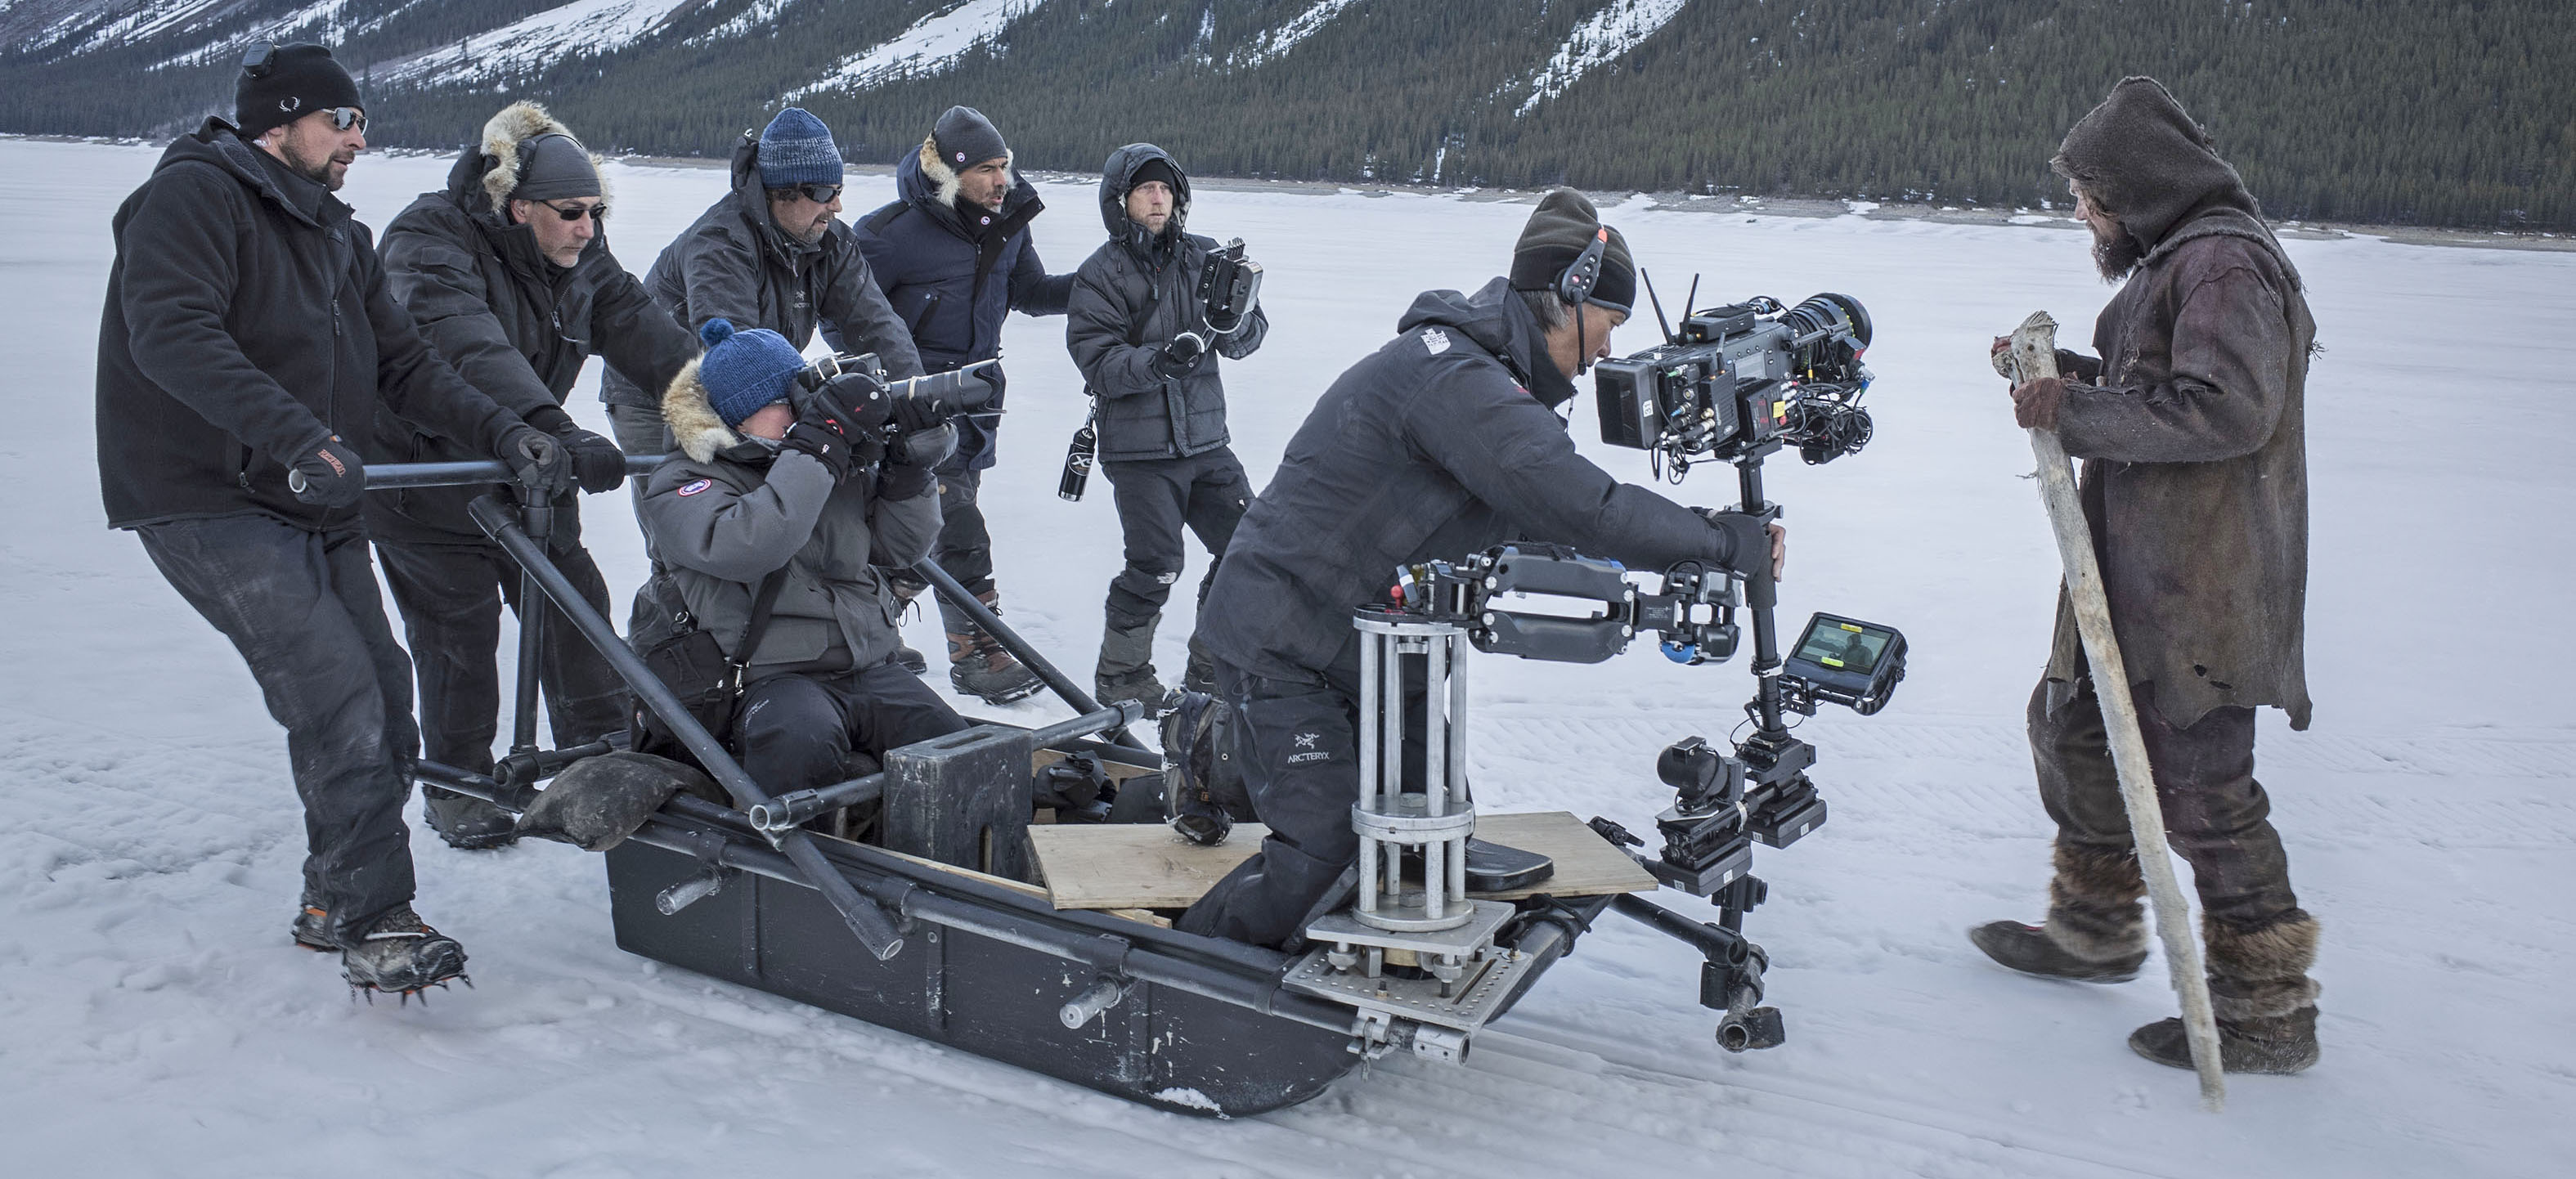 Lubezki and his team used a Steadicam mounted on an ice sled to capture a unique tracking shot over the snow.